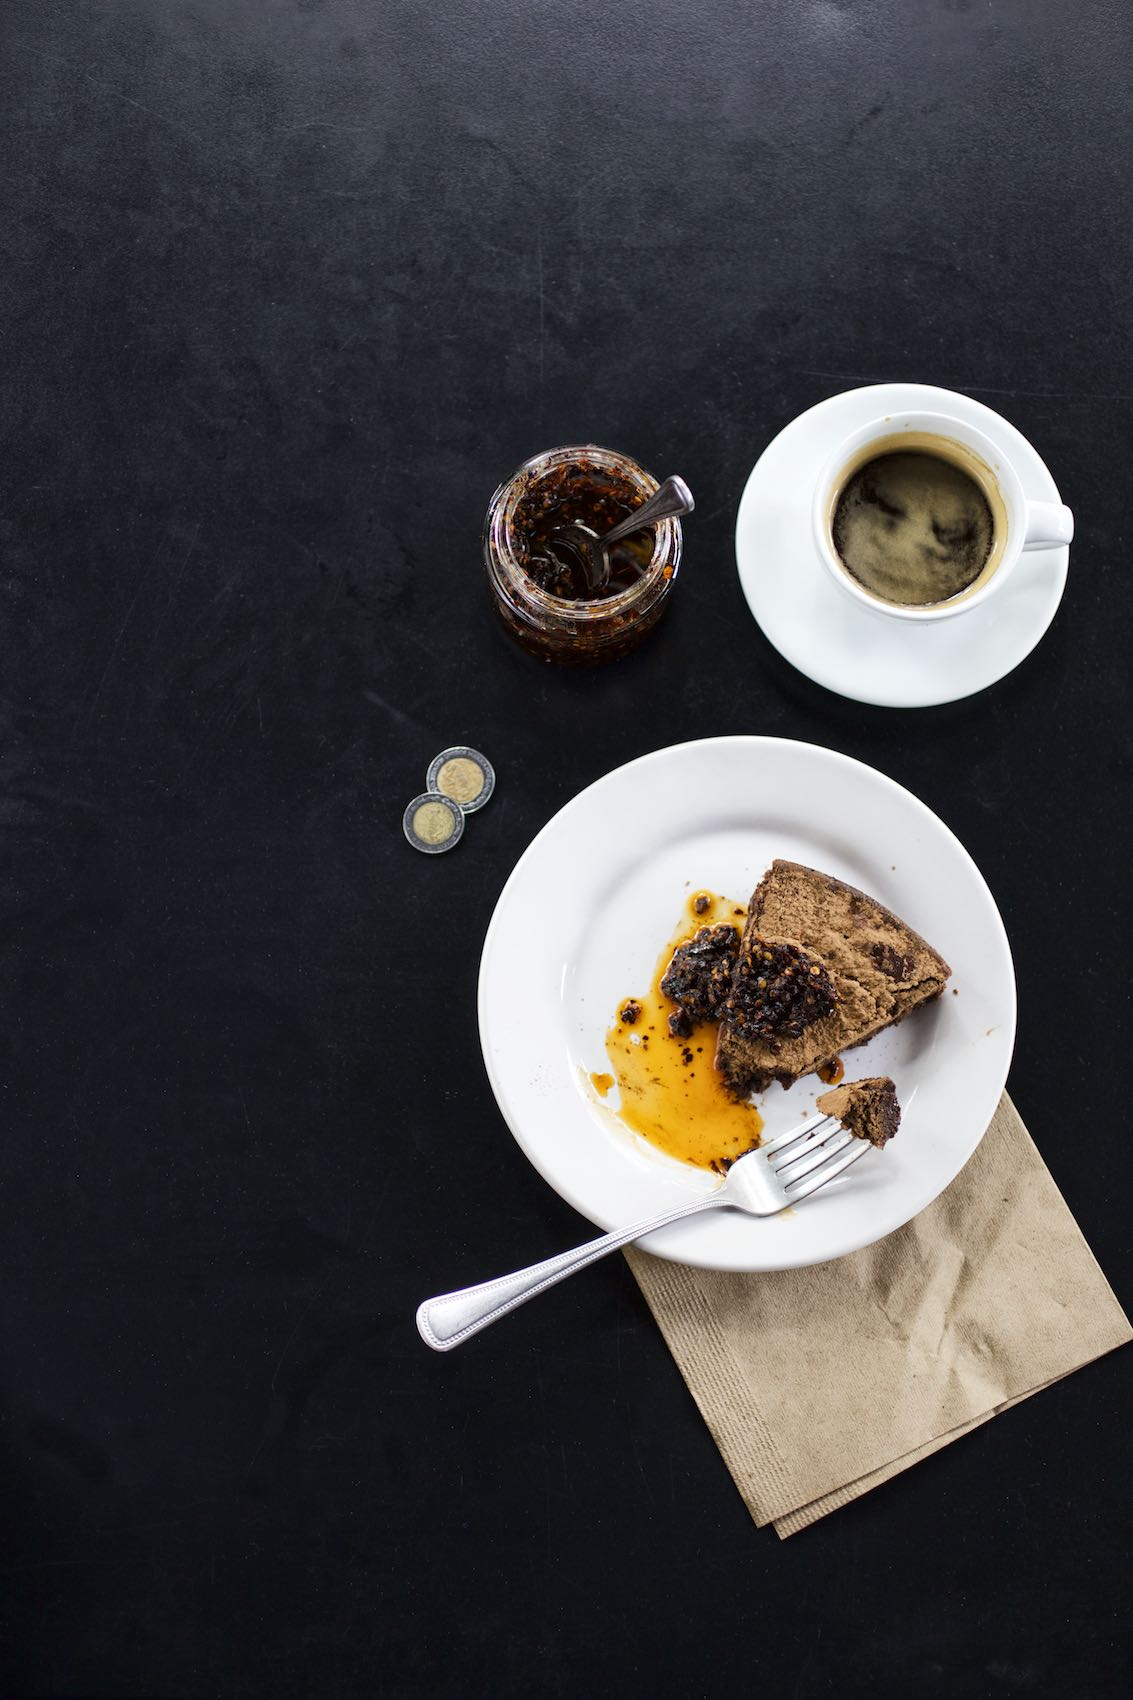 Jody Horton Photography - Cafe snack, espresso, and pesos on a black table.